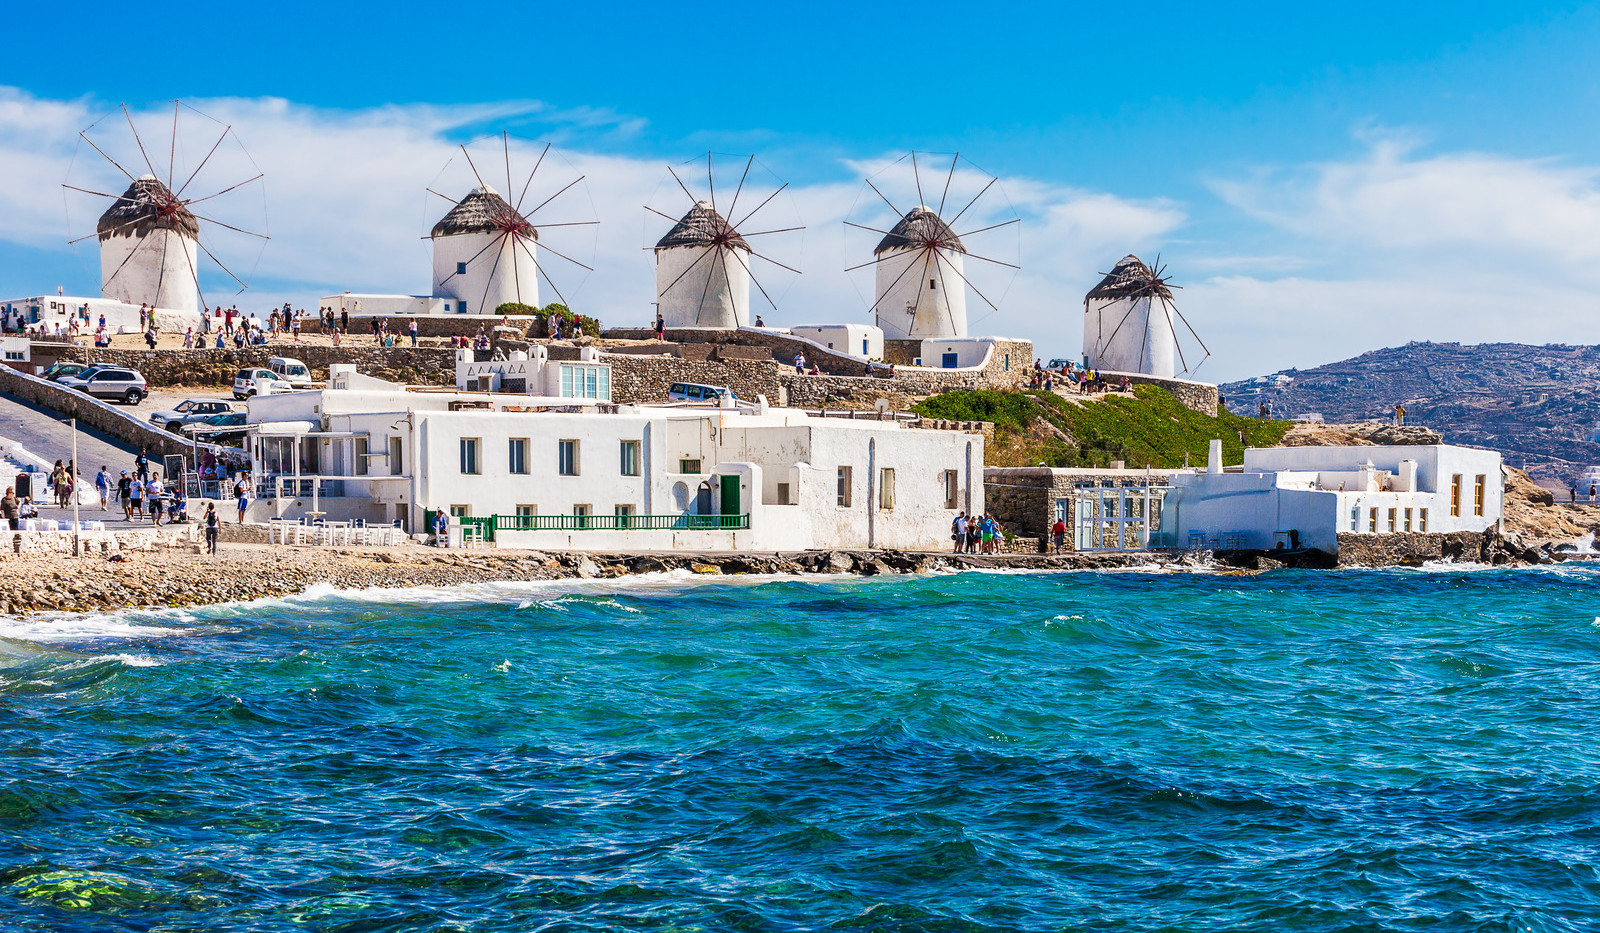 Canva - The famous Mykonos windmills.jpg